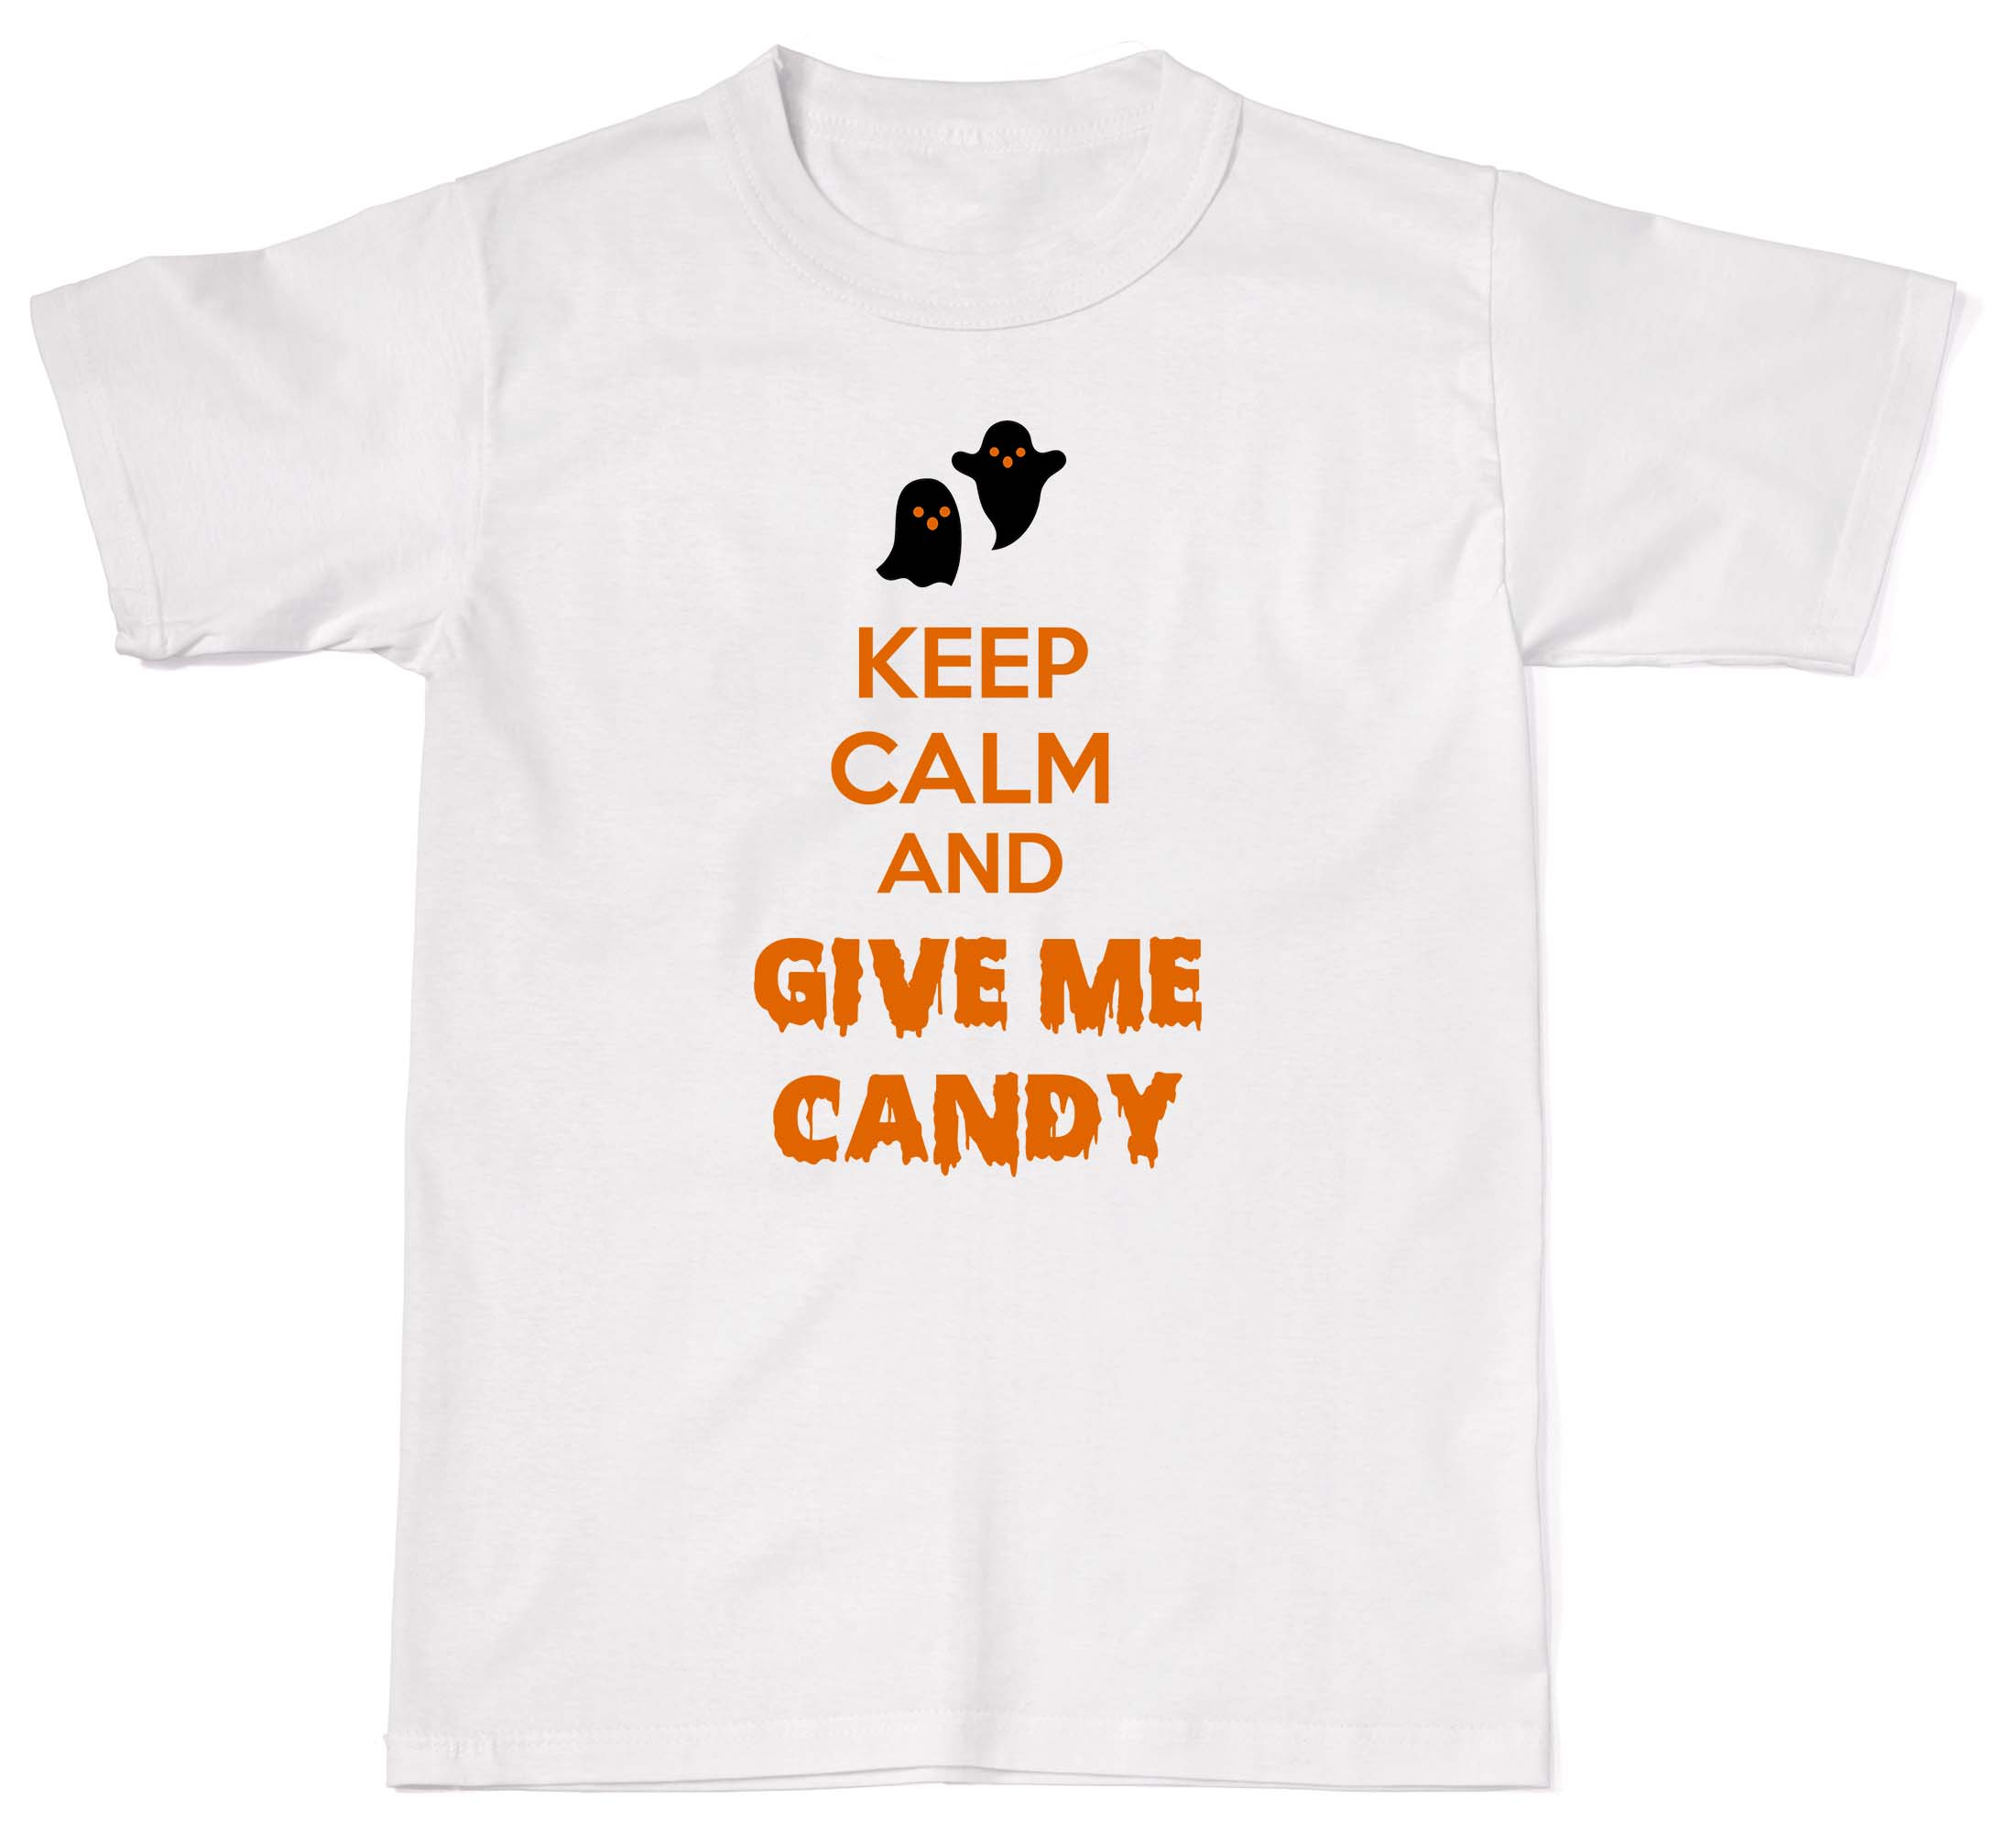 2018 Summer Fashion Men O-Neck T Shirt Keep Calm And Give Me The Candy Funny Halloween Mens Womens Cotton T-Shirt T shi